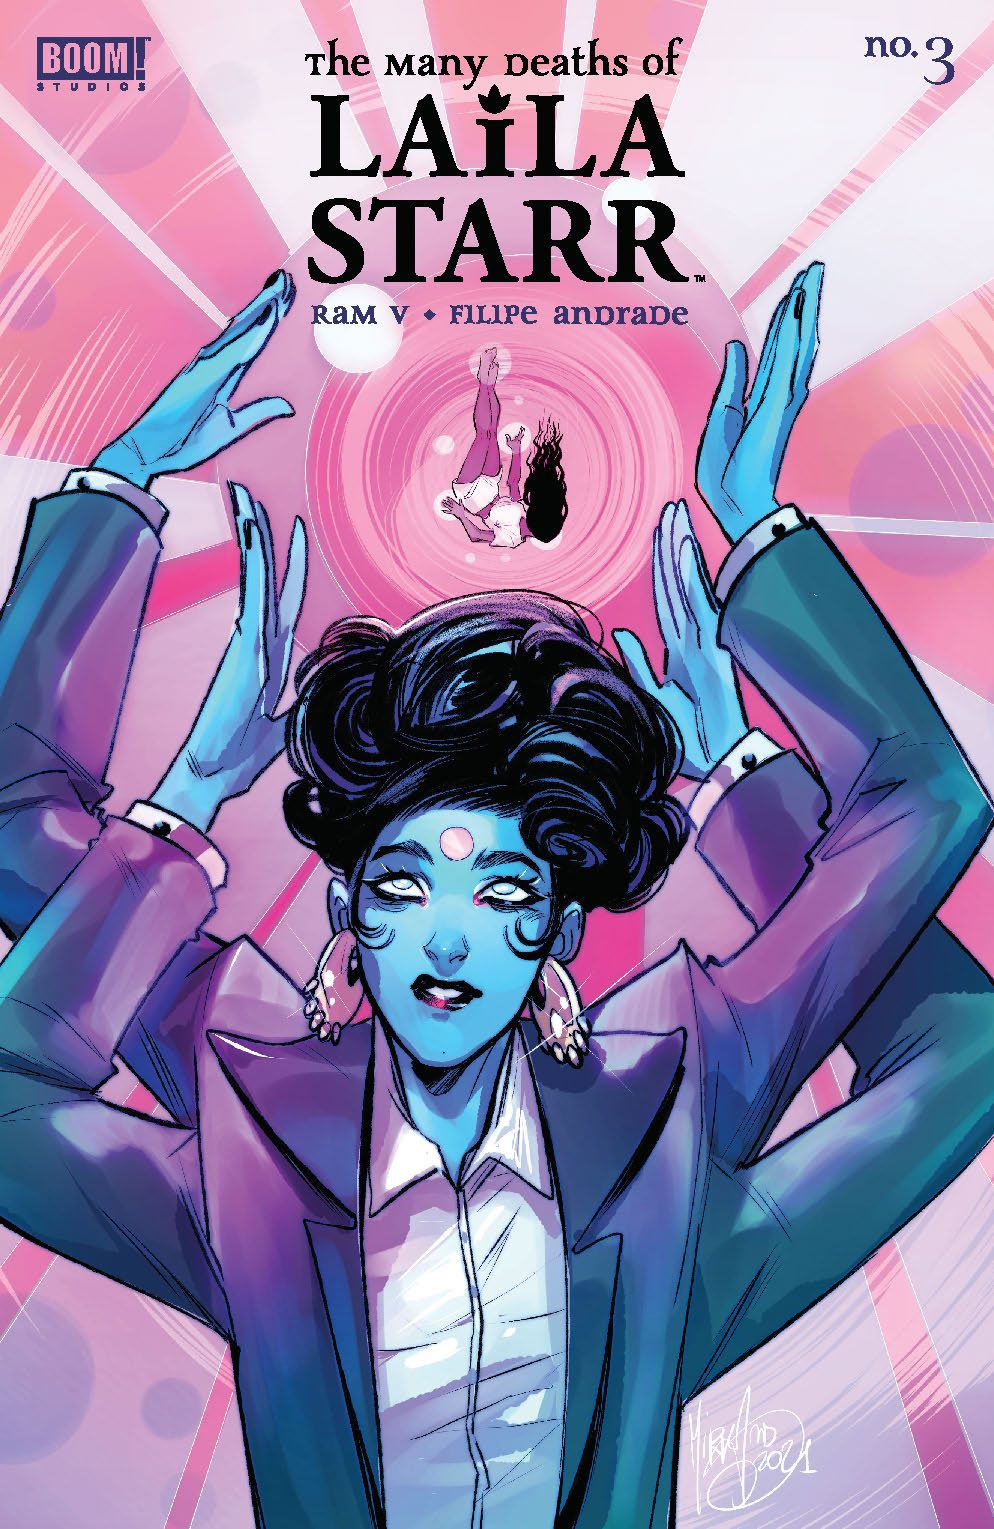 ManyDeathsLailaStarr_003_Cover_C_Variant ComicList Previews: THE MANY DEATHS OF LAILA STARR #3 (OF 5)